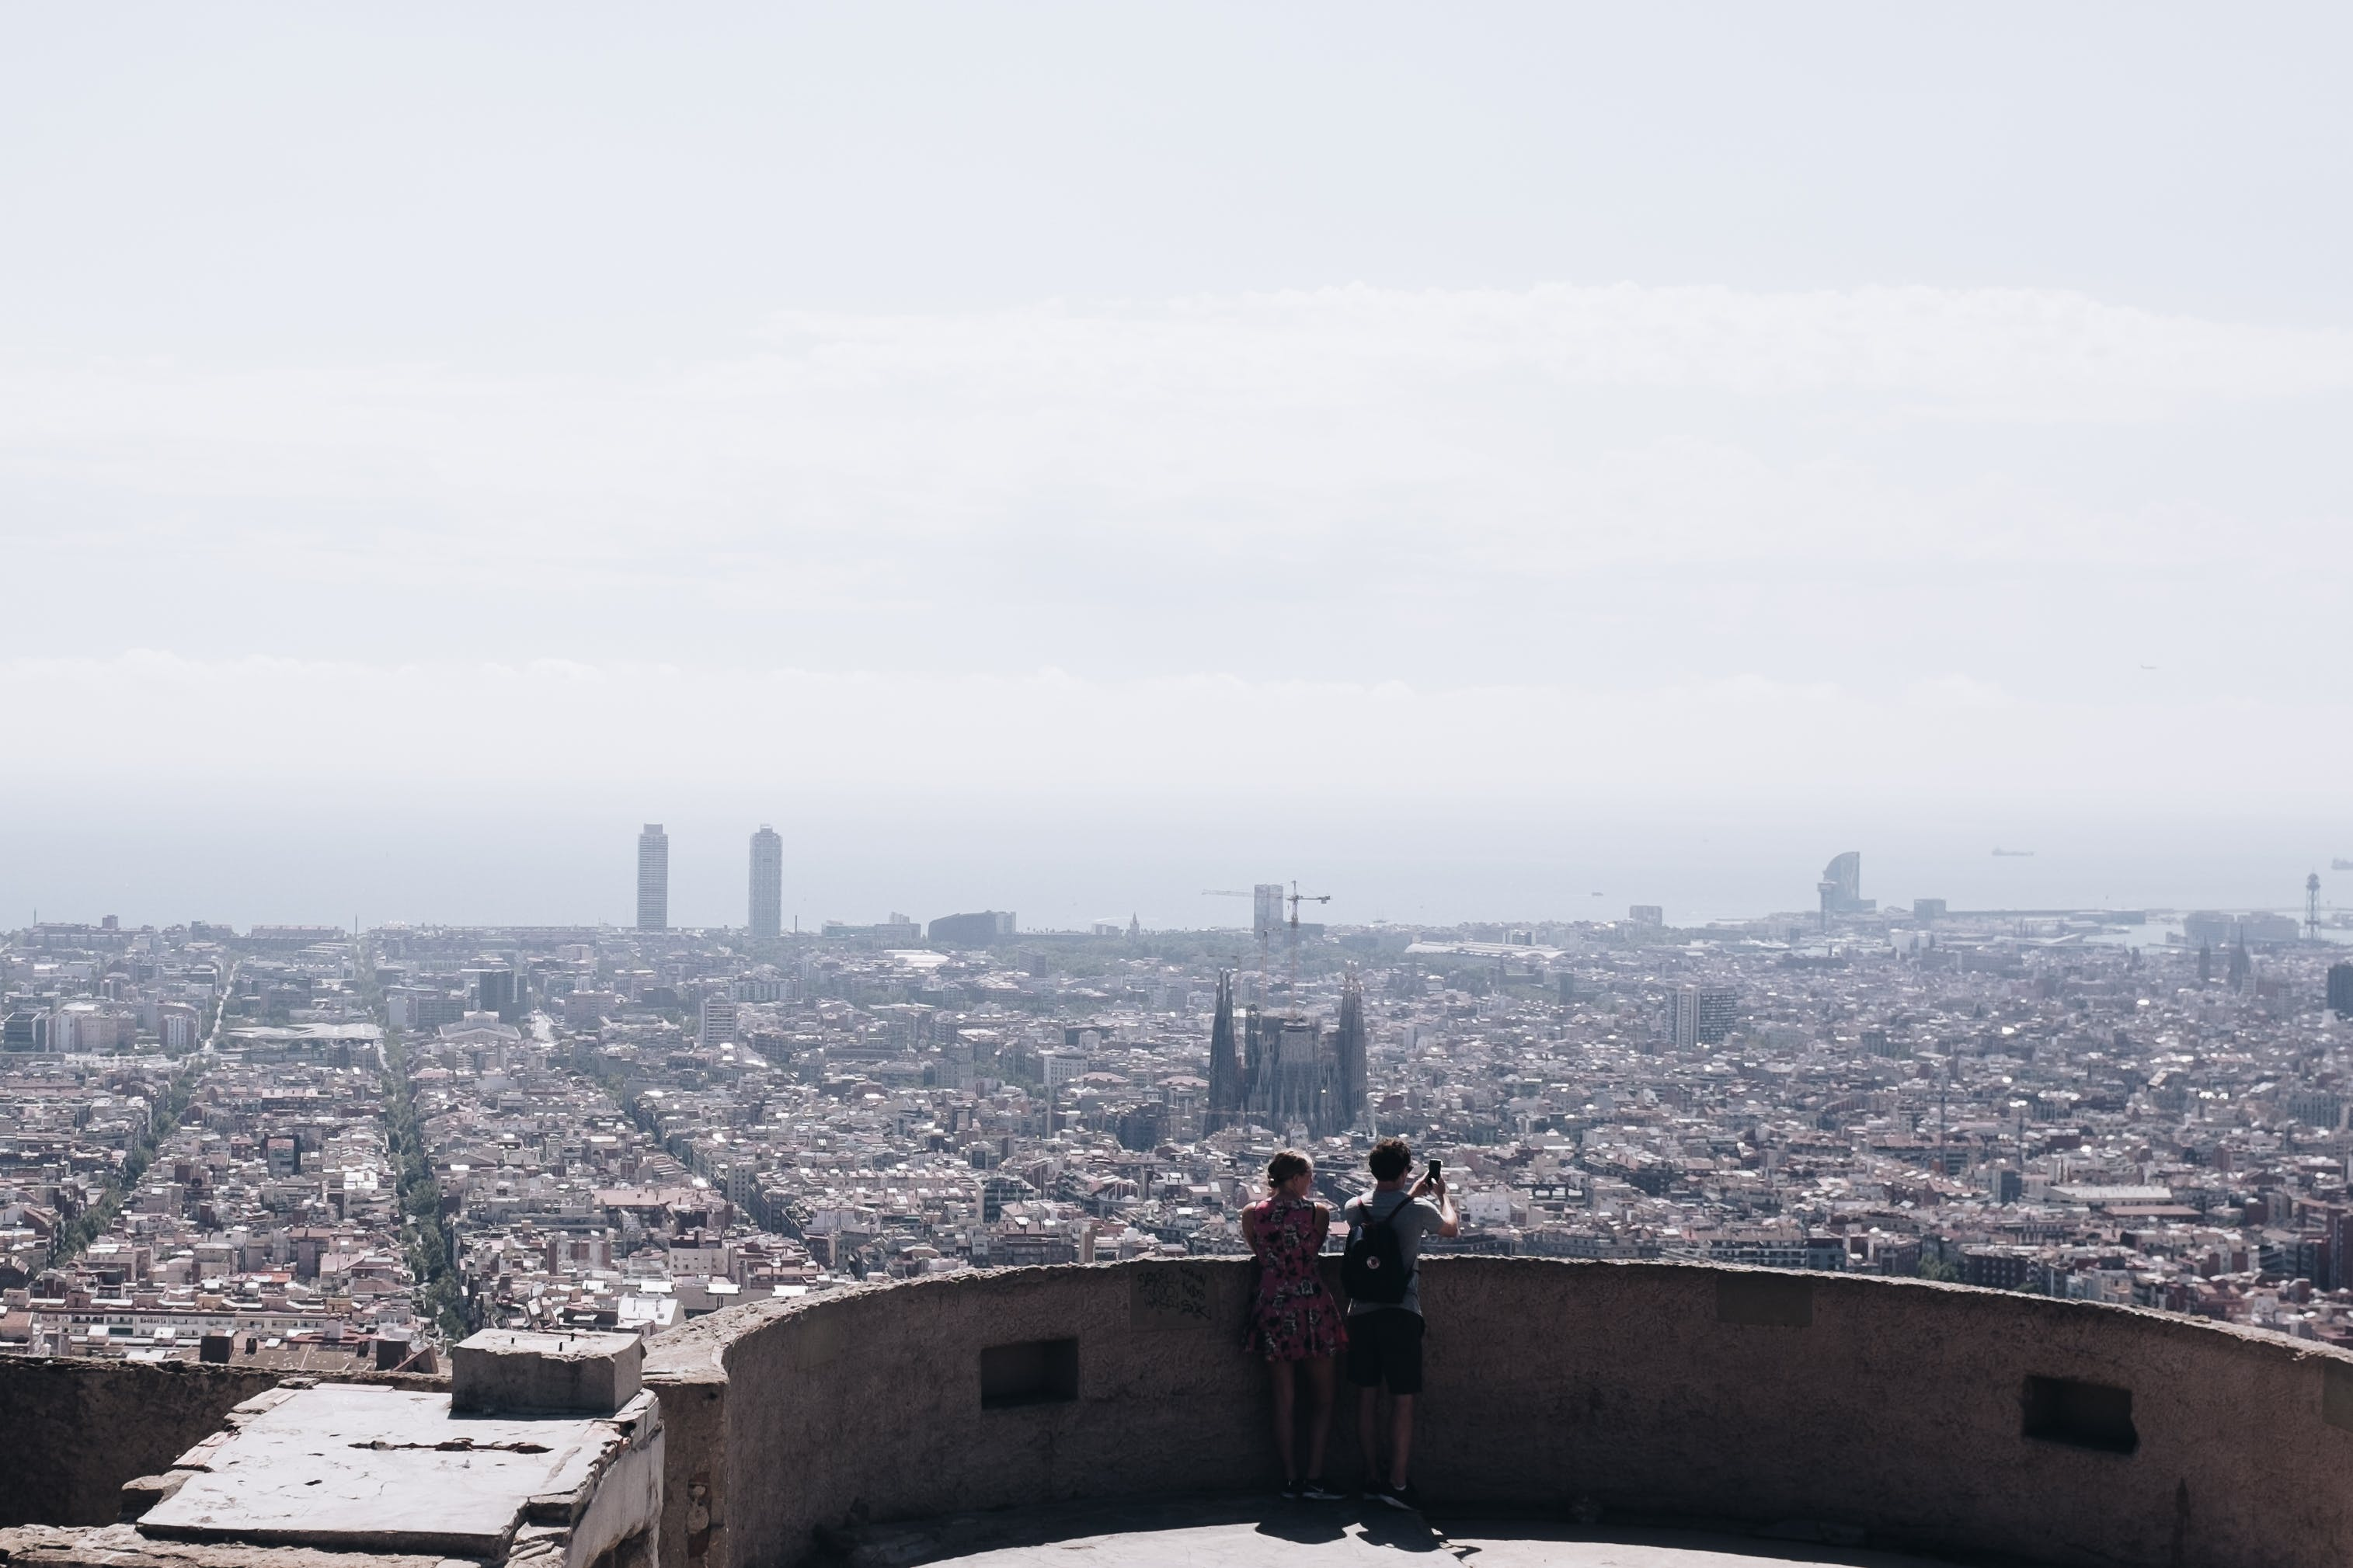 Photo of Two People at the Rooftop